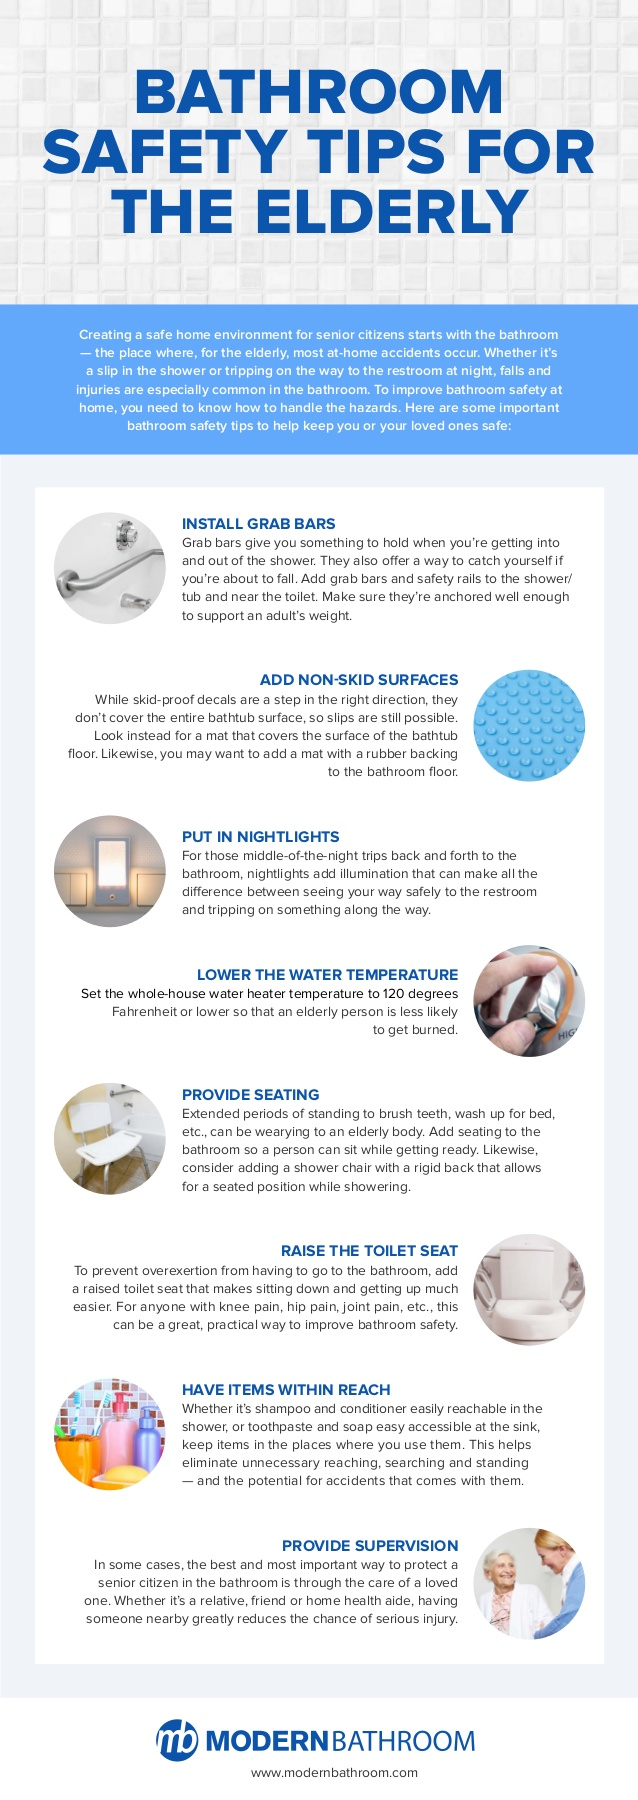 Infographic bathroom safety tips for seniors geezer guff for How to make bathroom safe for elderly